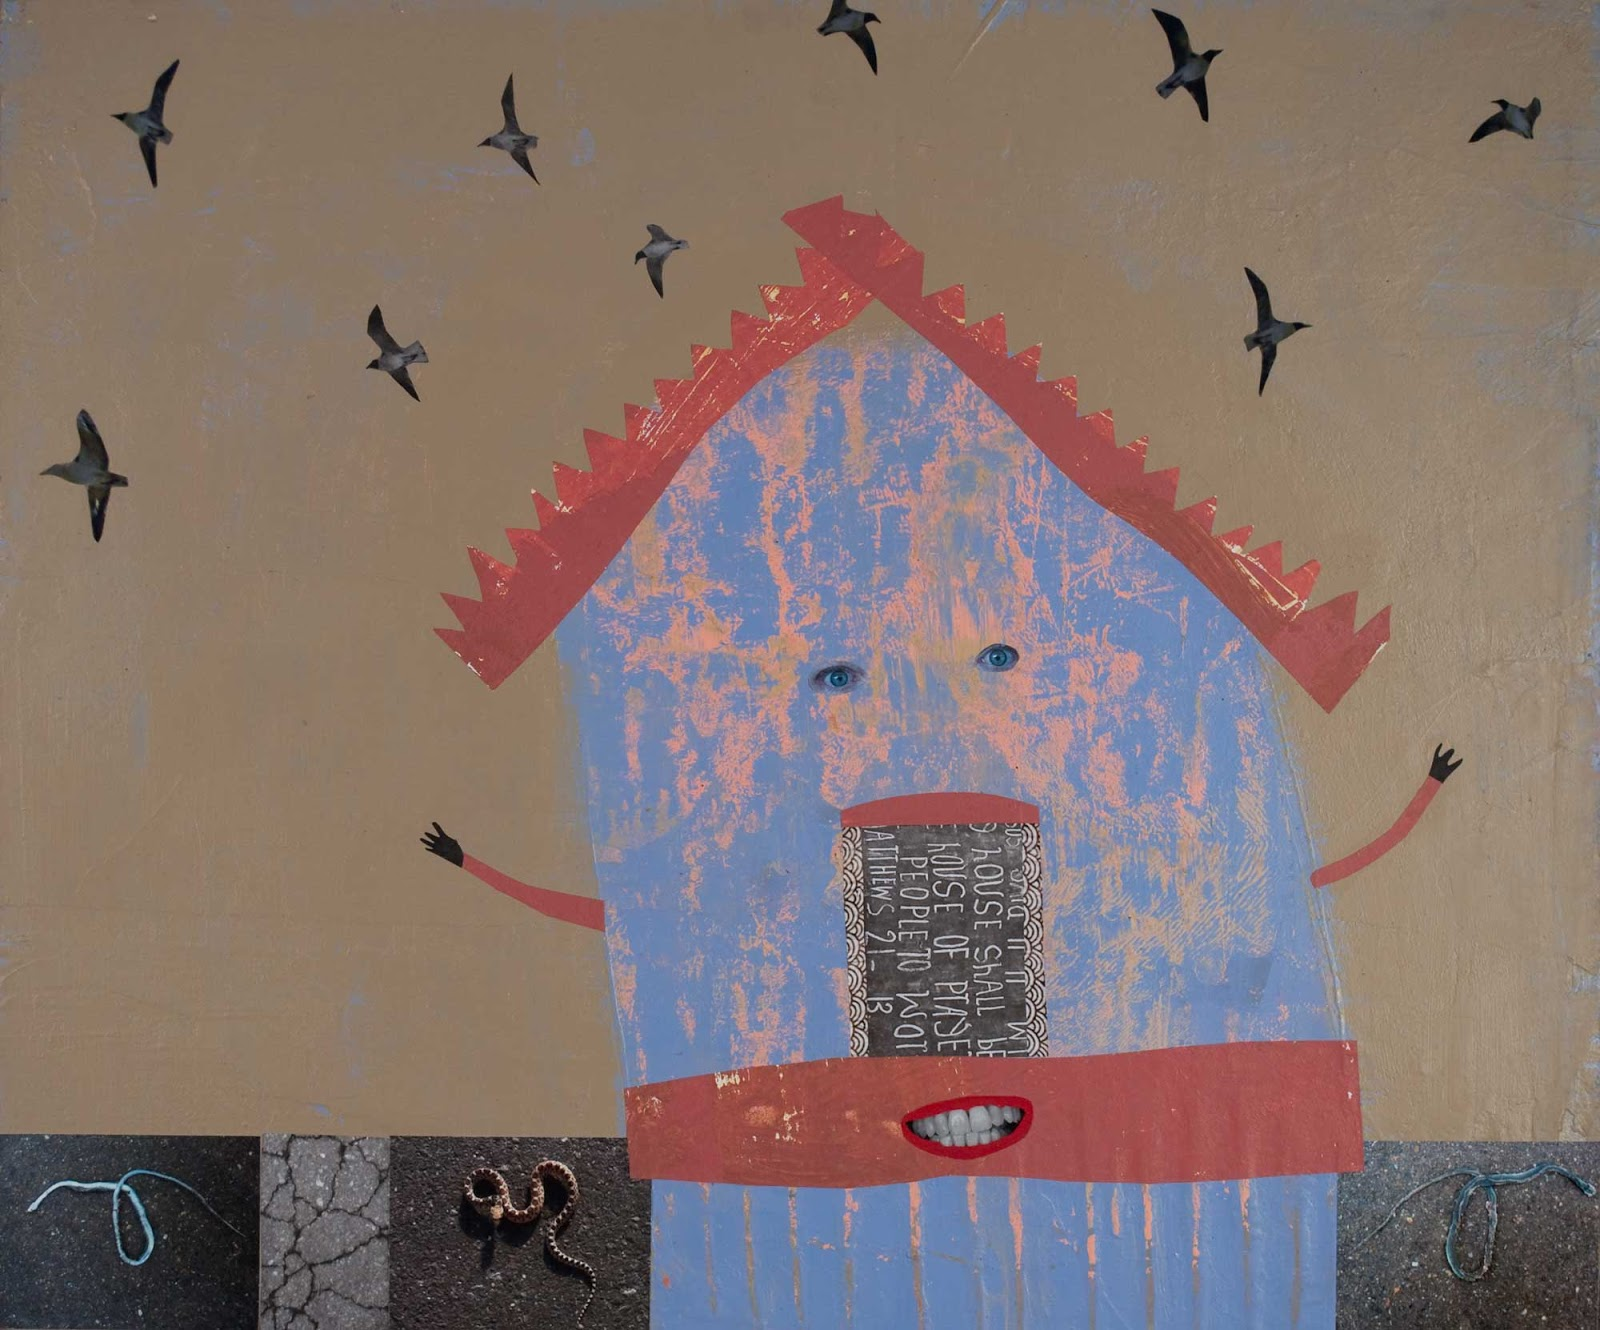 holly roberts one painting at a time: blue house 2016